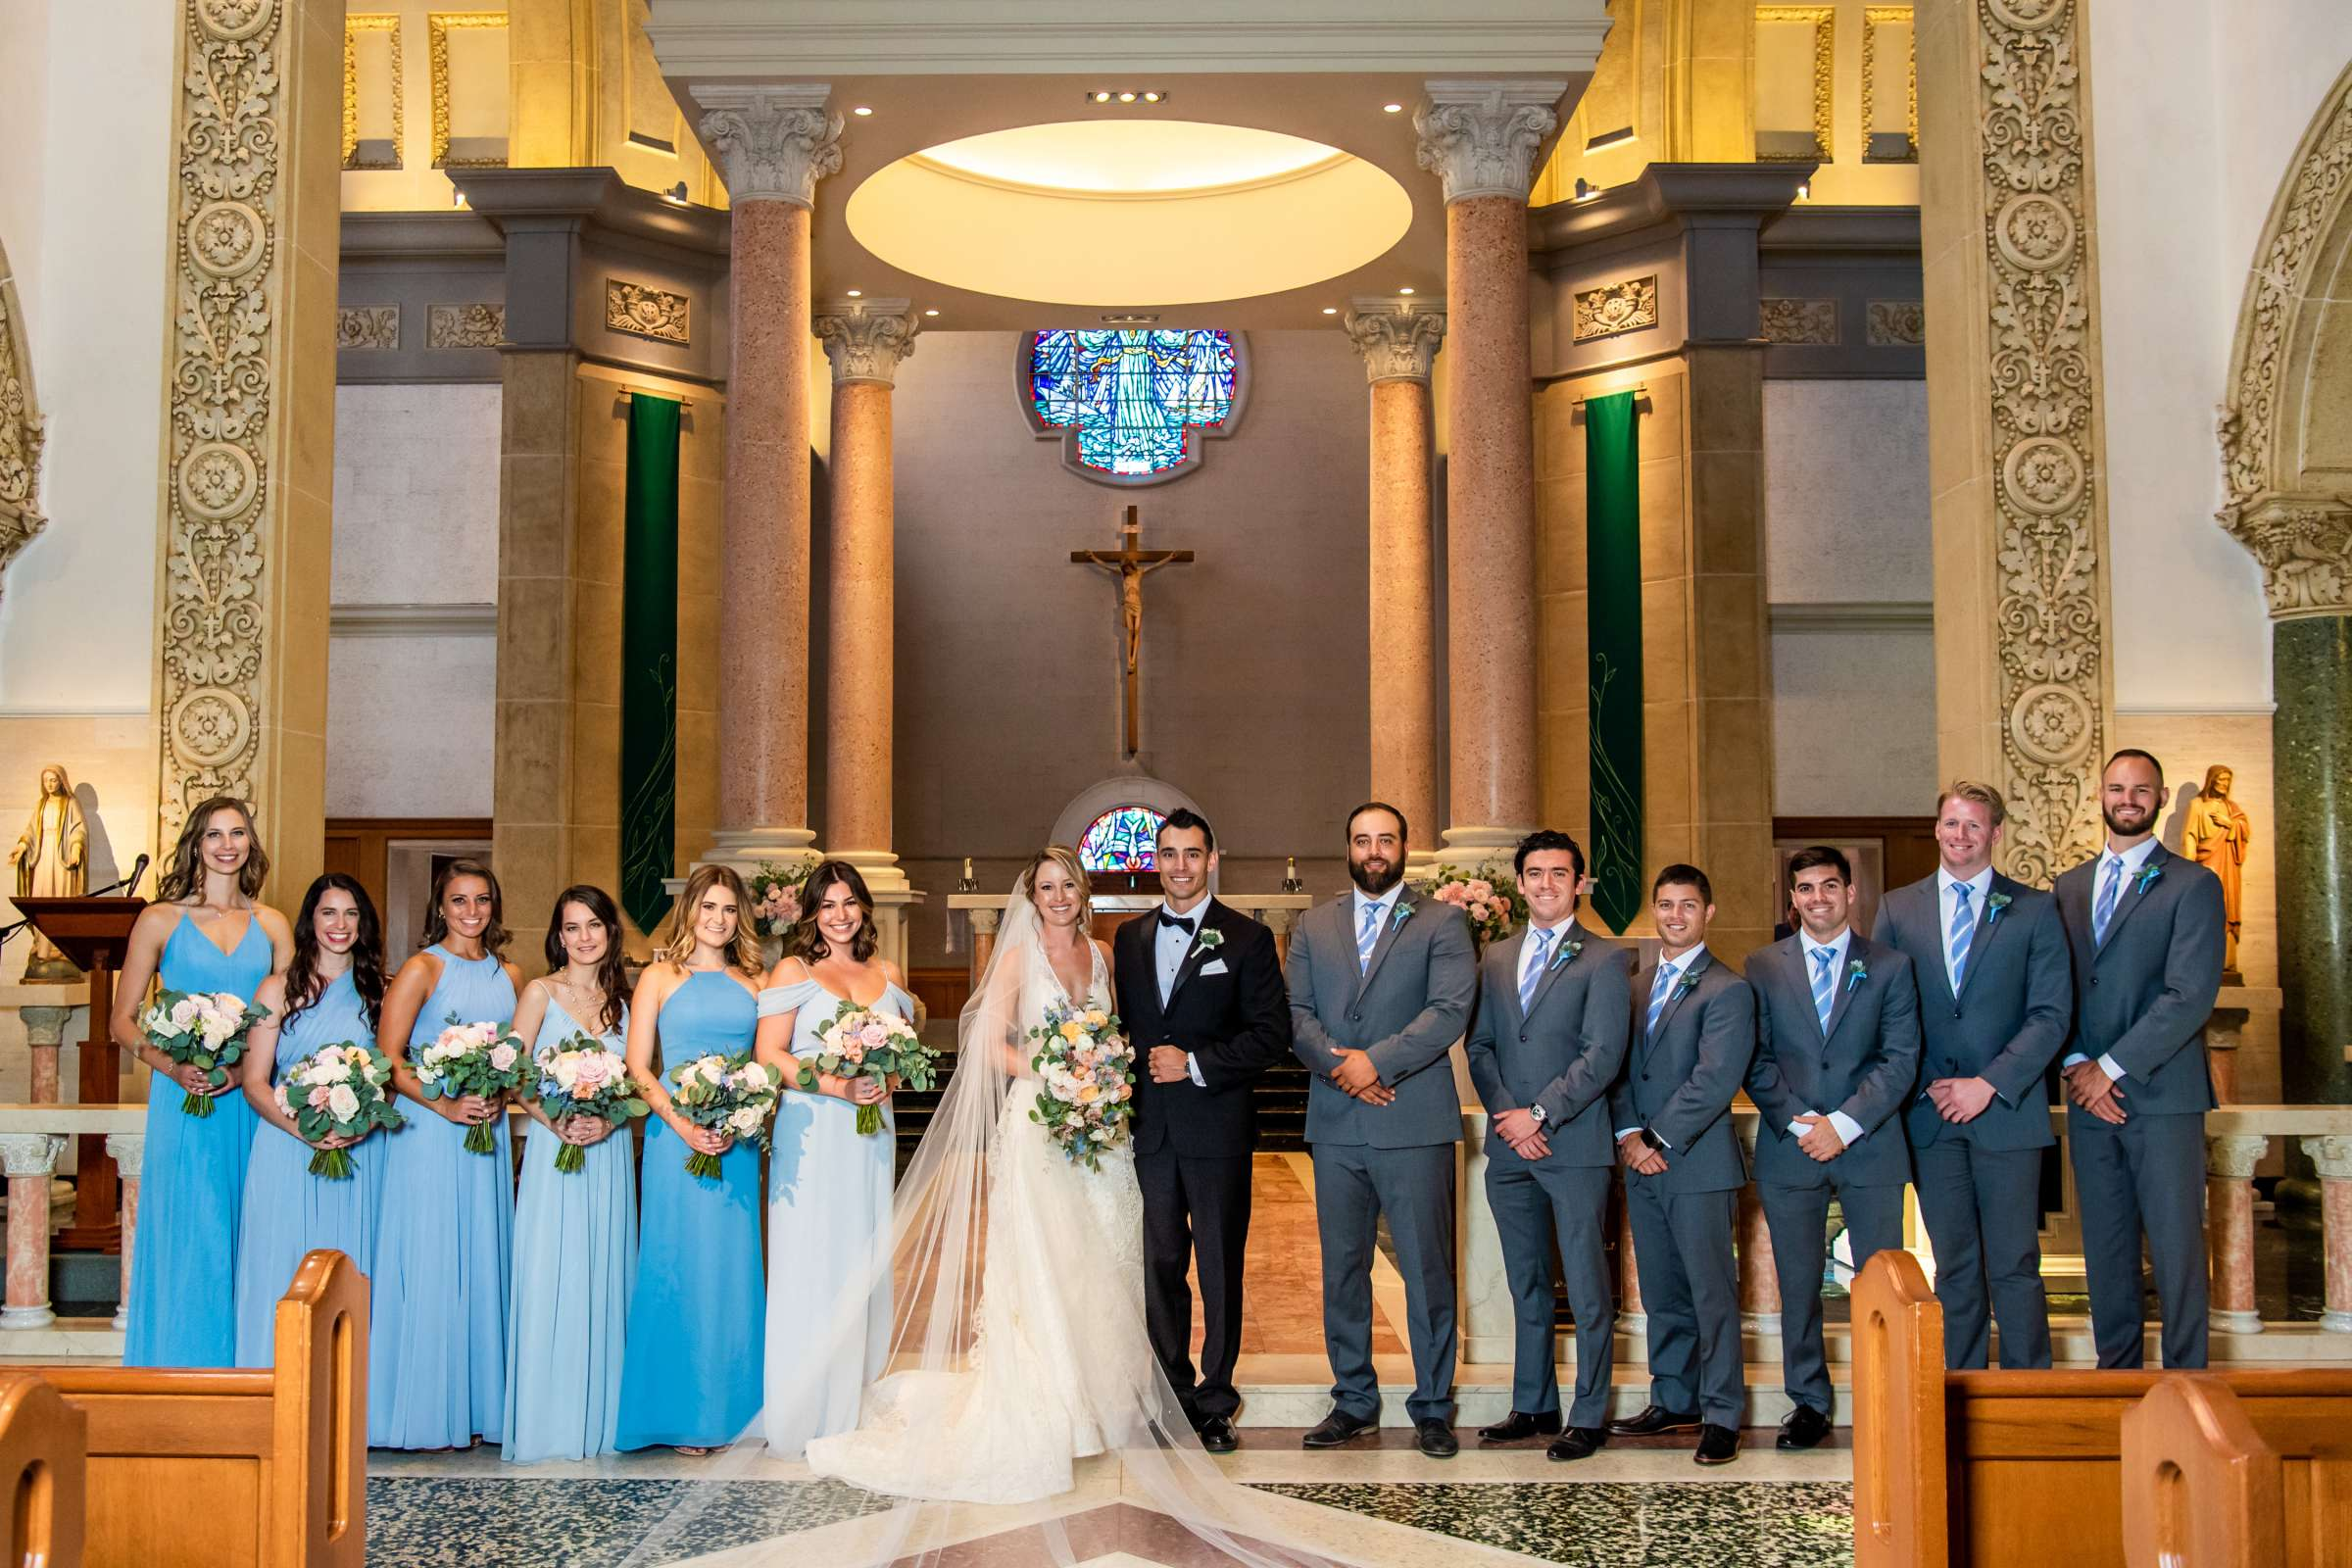 The Prado Wedding coordinated by Bliss Events, Sara and Marvin Wedding Photo #559554 by True Photography